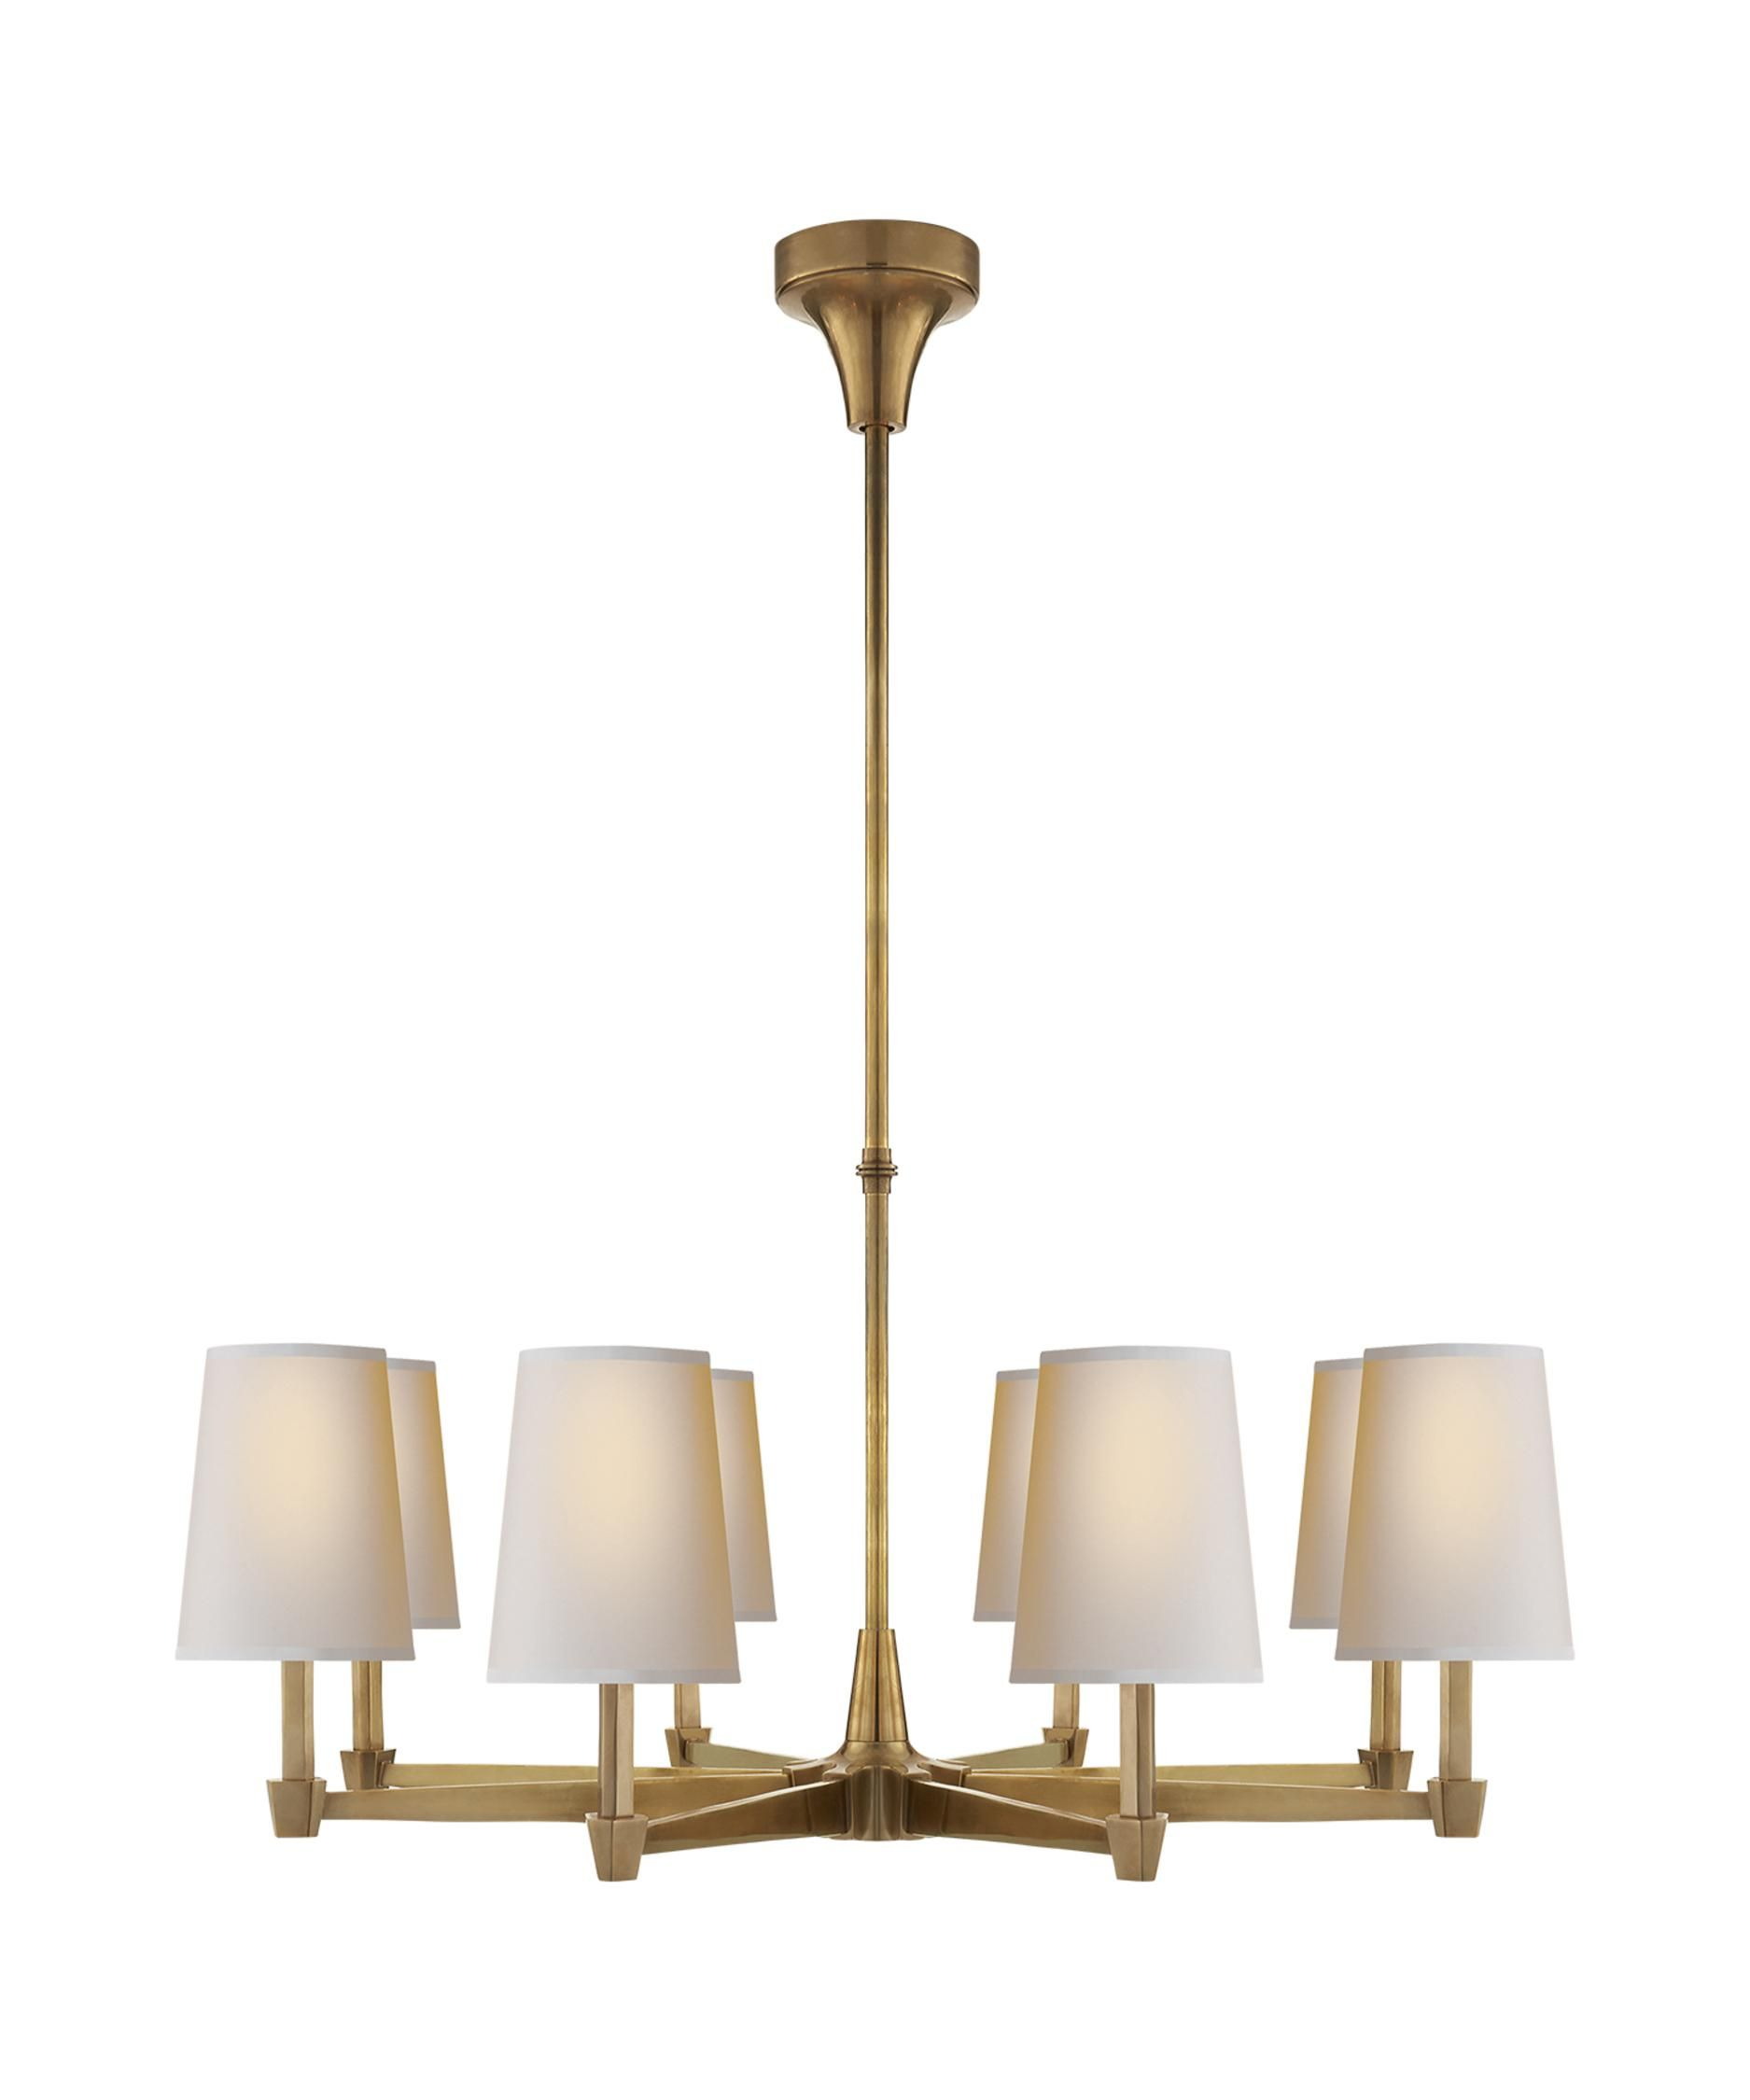 Thomas O Brien Caron 30 Inch 8 Light Chandelier Capitol Lighting Large Chandeliers Visual Comfort Chandelier Visual Comfort Lighting